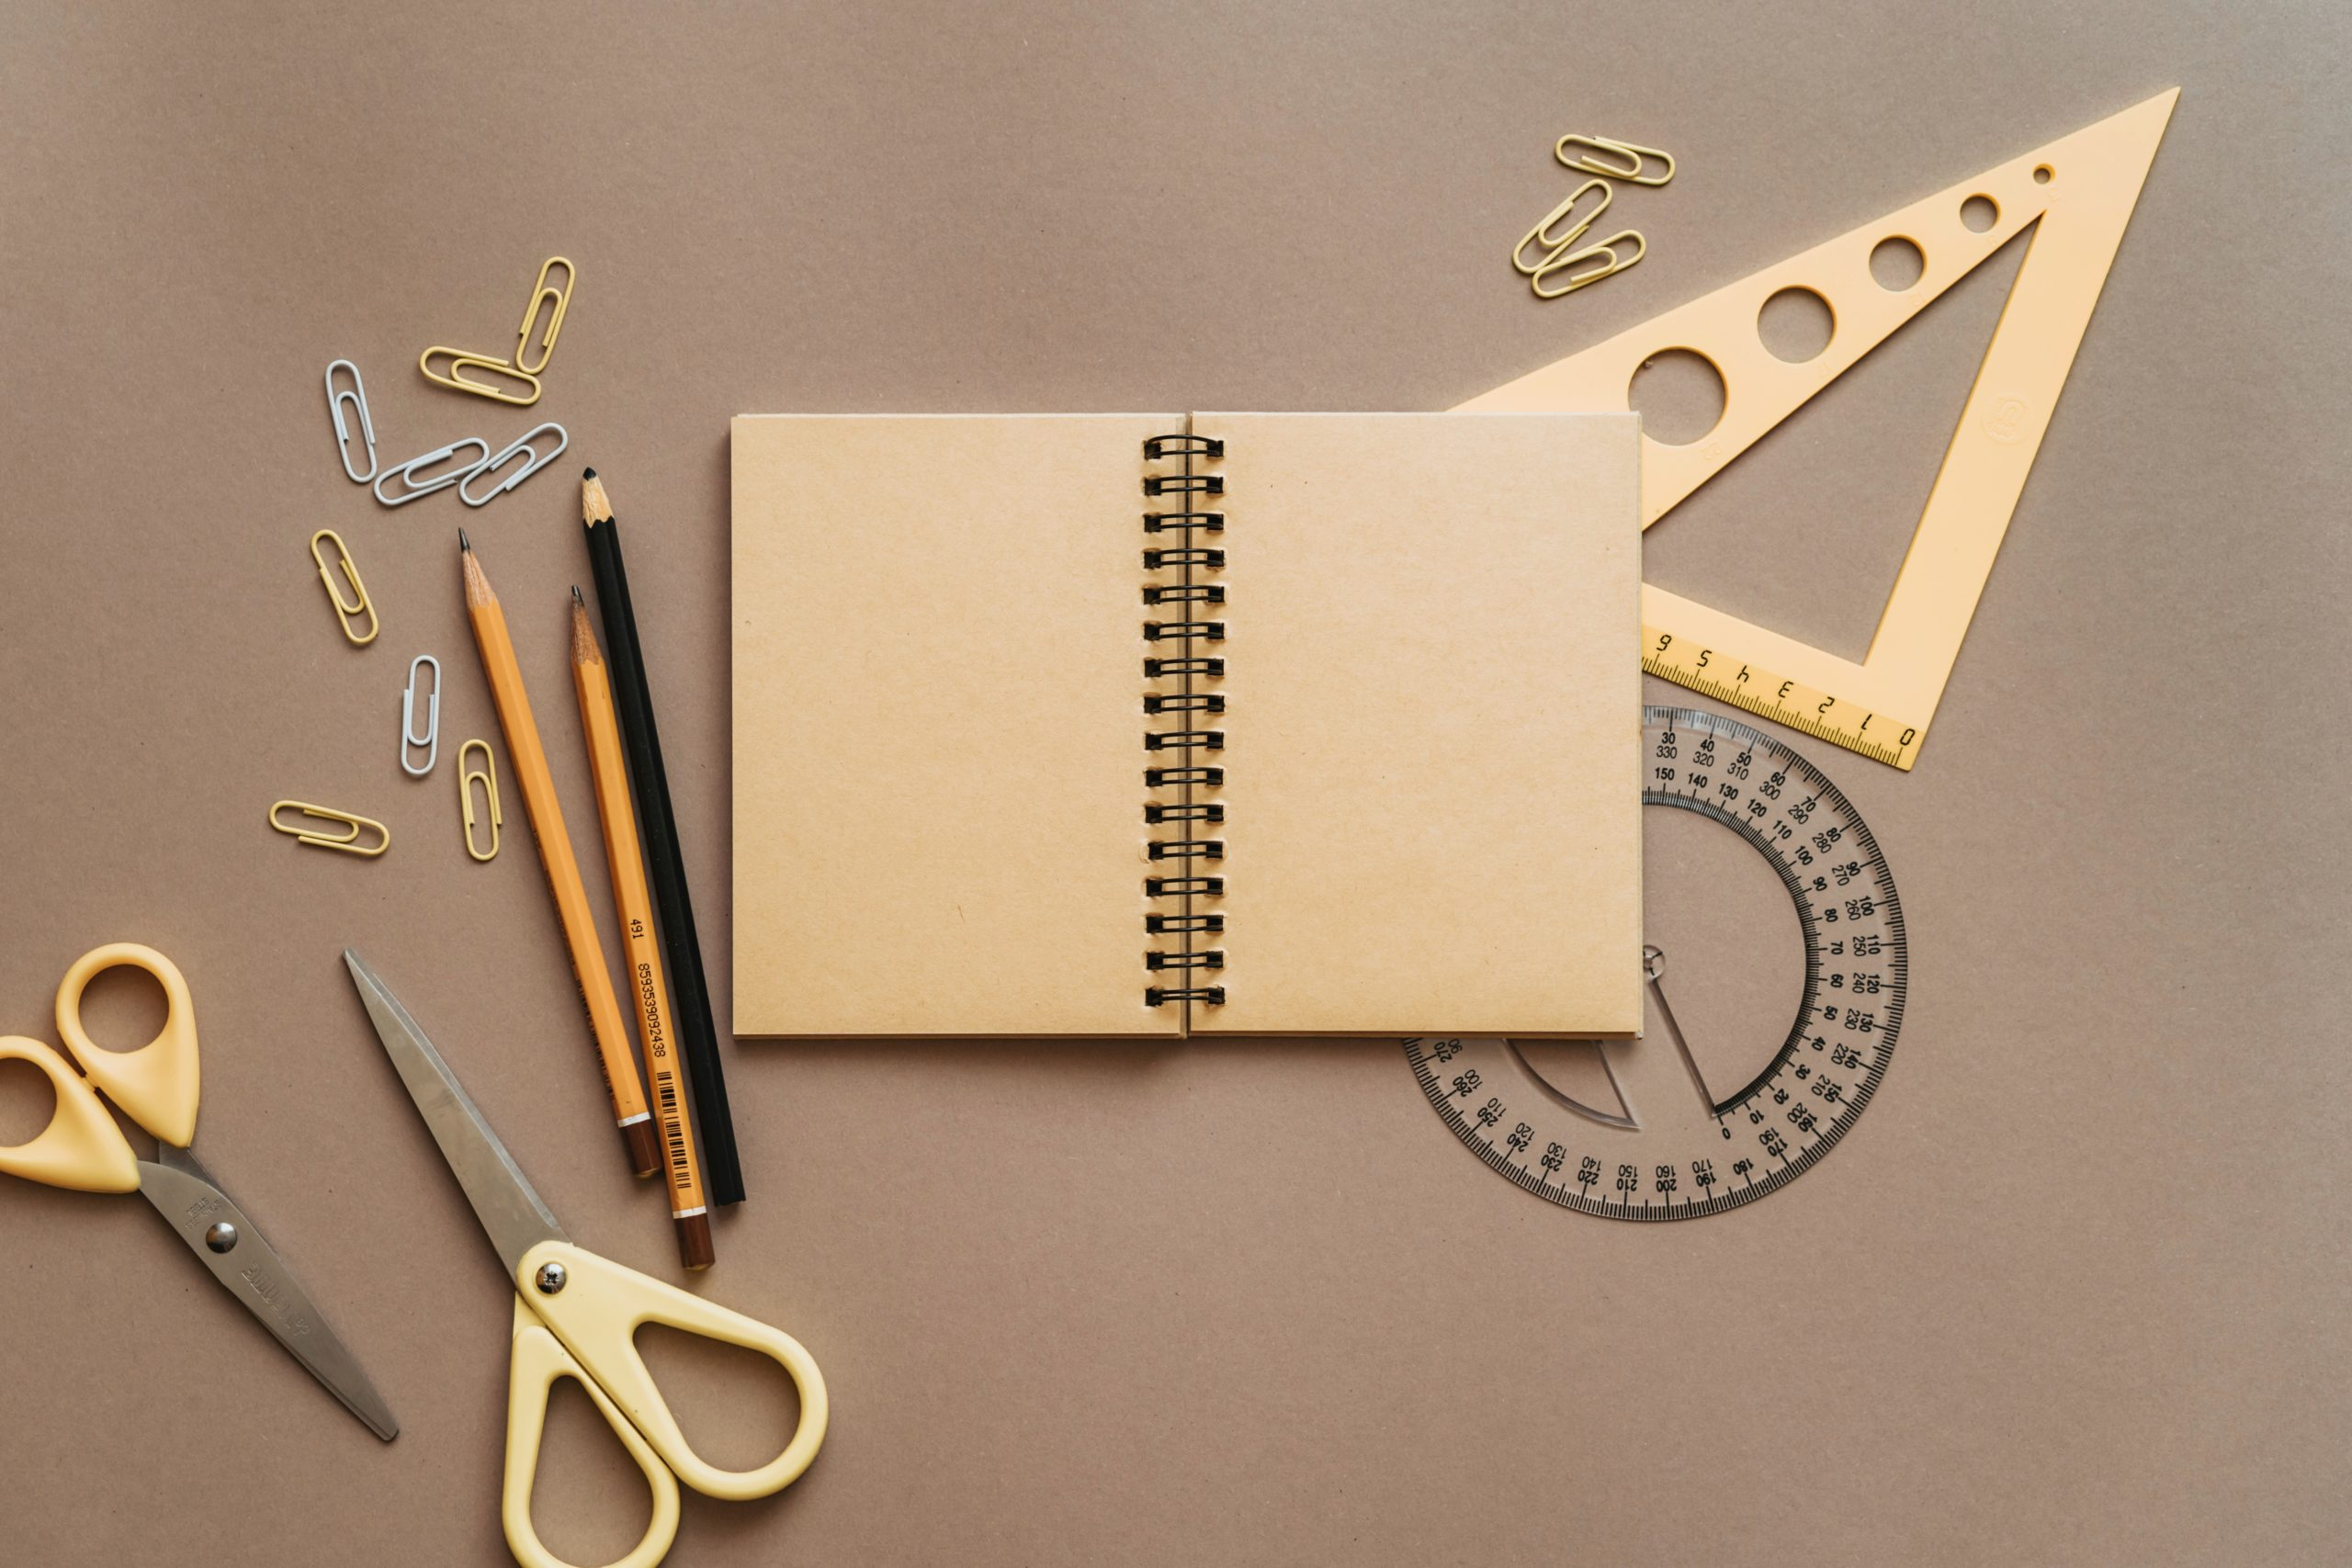 A desktop with scissors, pencils, paperclips, a notebook, a protractor, and a plastic triangle